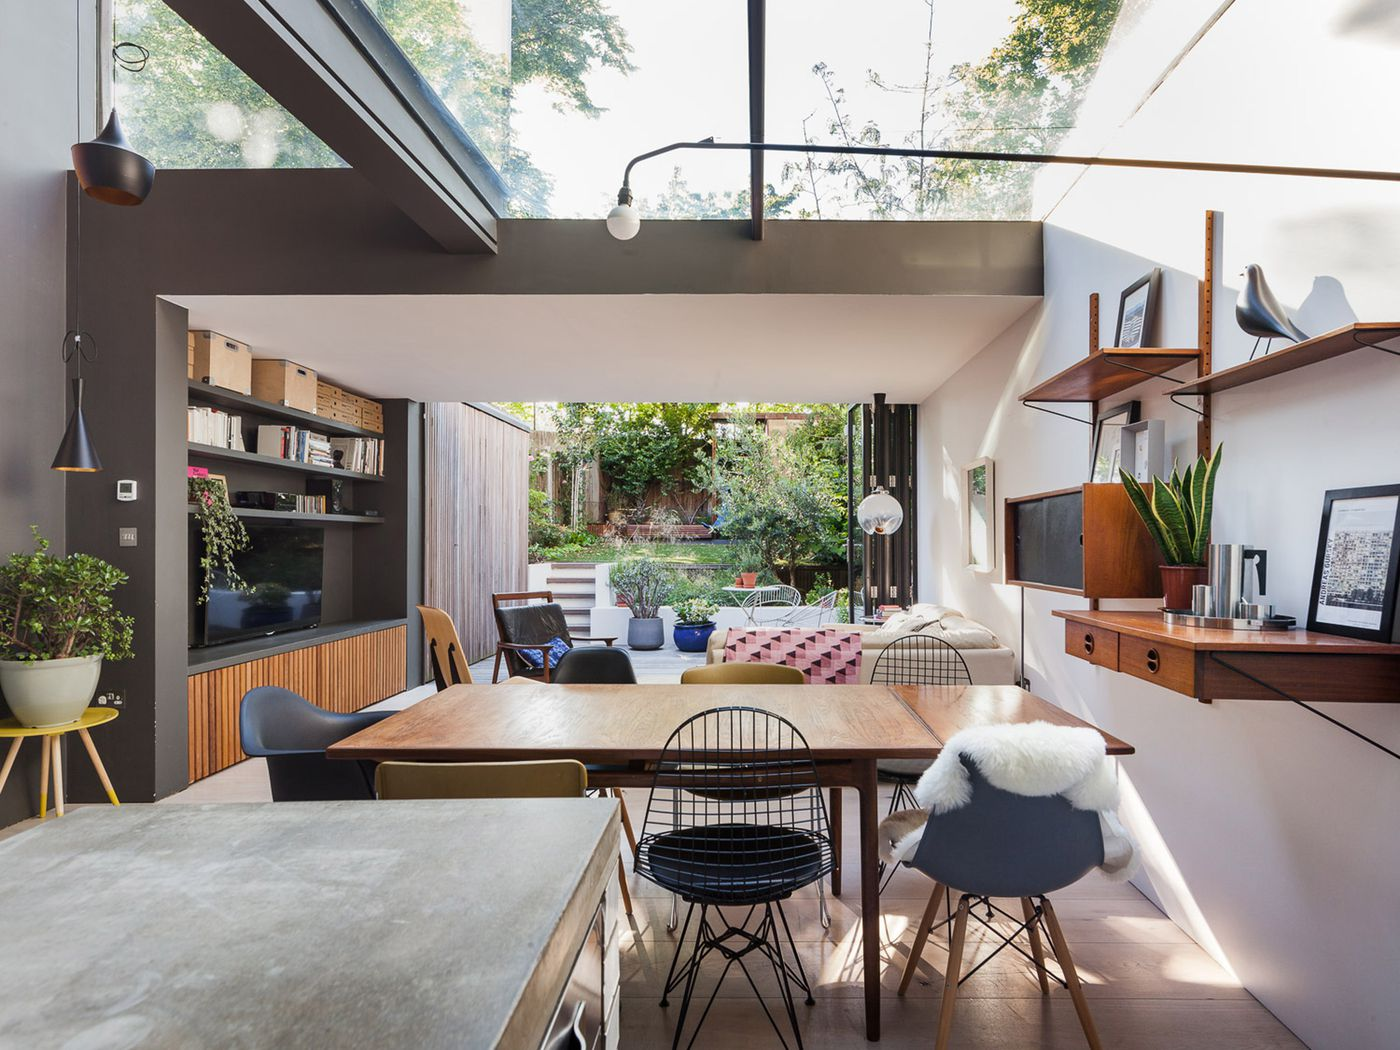 Home Extension Ideas 10 Looks To Inspire Your Renovation Curbed,Different Ways To Hang Curtains On A Rod